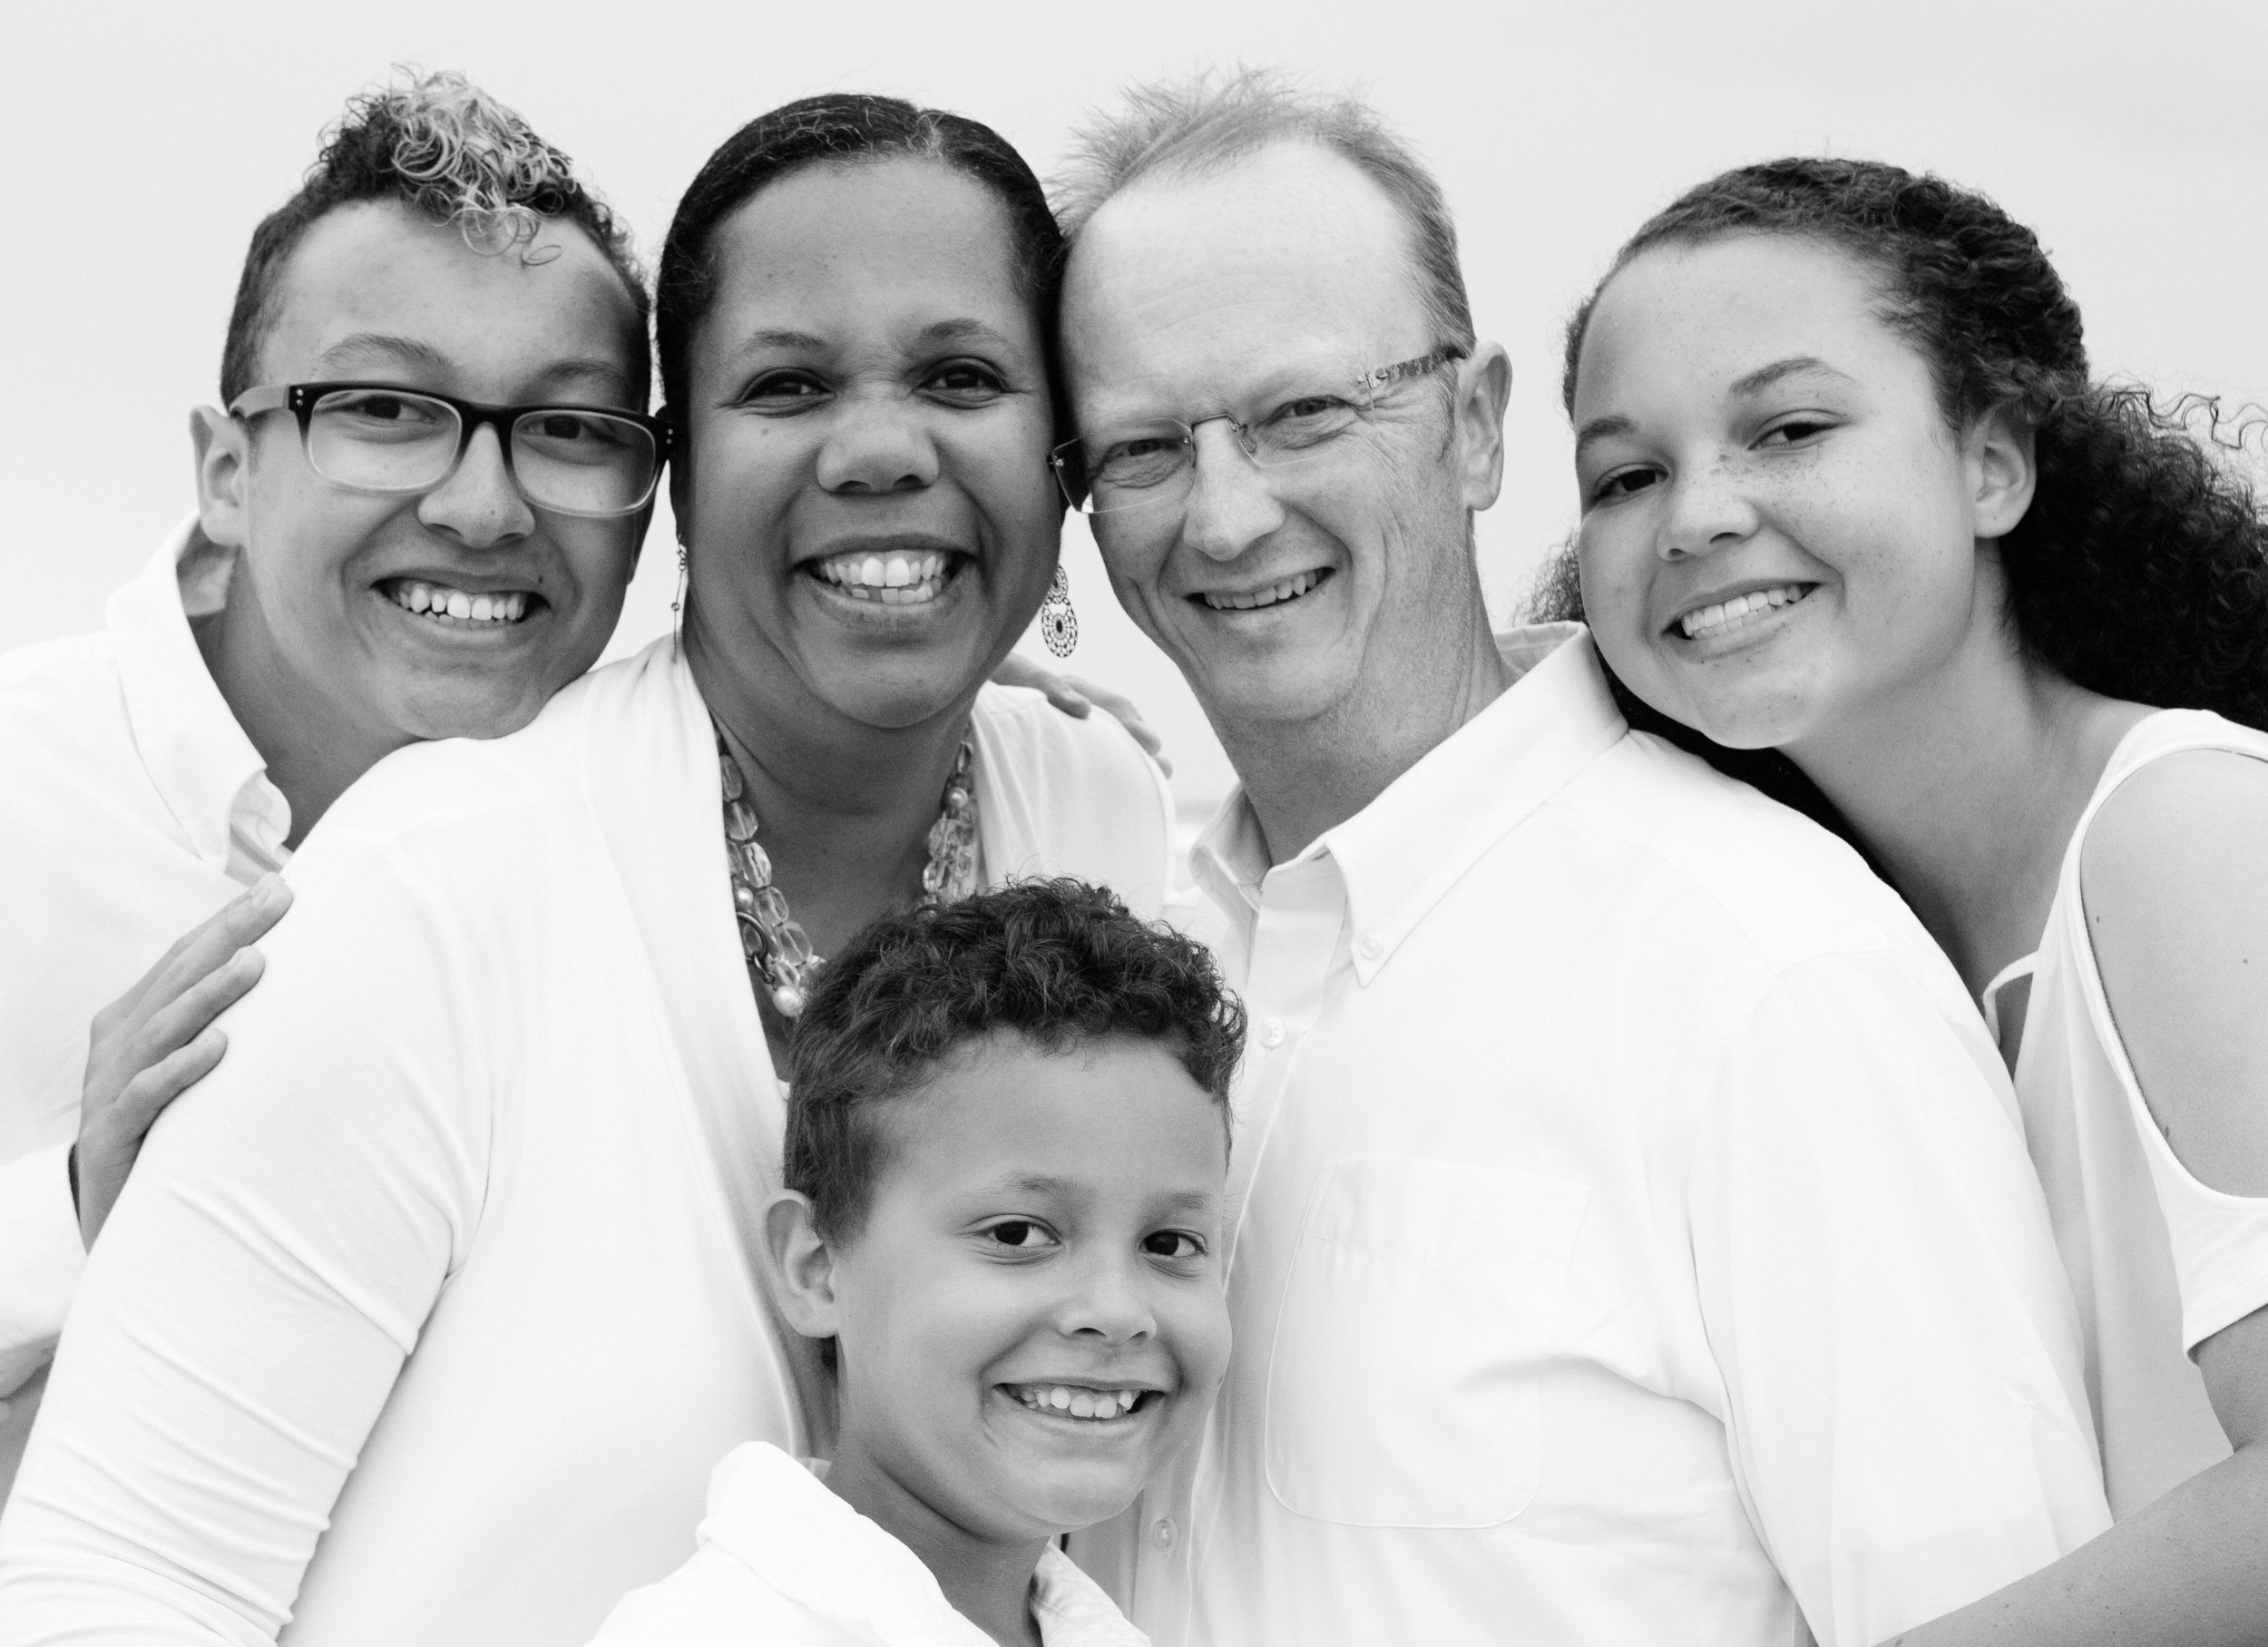 The Malcolms (L to R) Christian, Kimberly, Alexander, David, Sophia